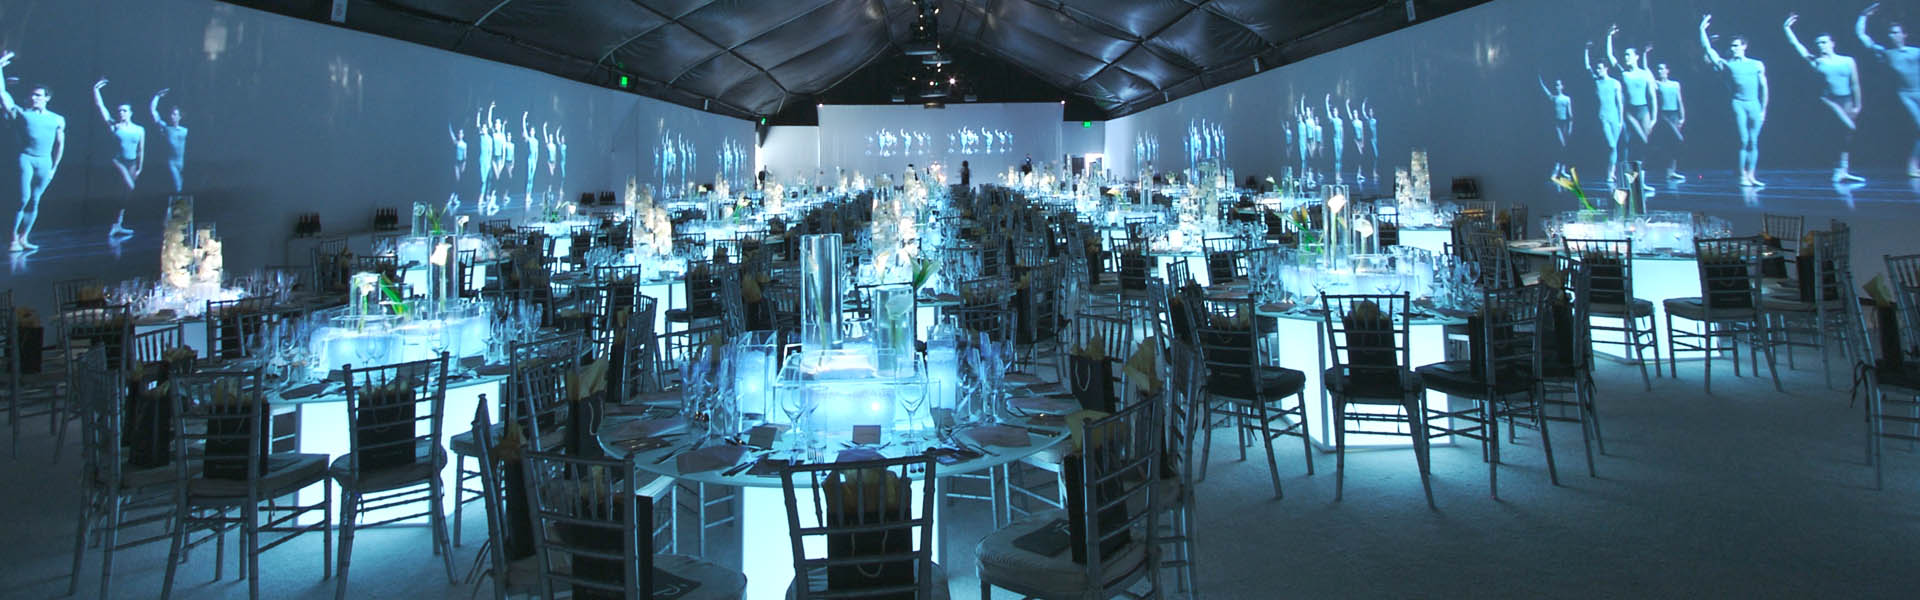 lighting for galas and fundraisers stuart event rentals